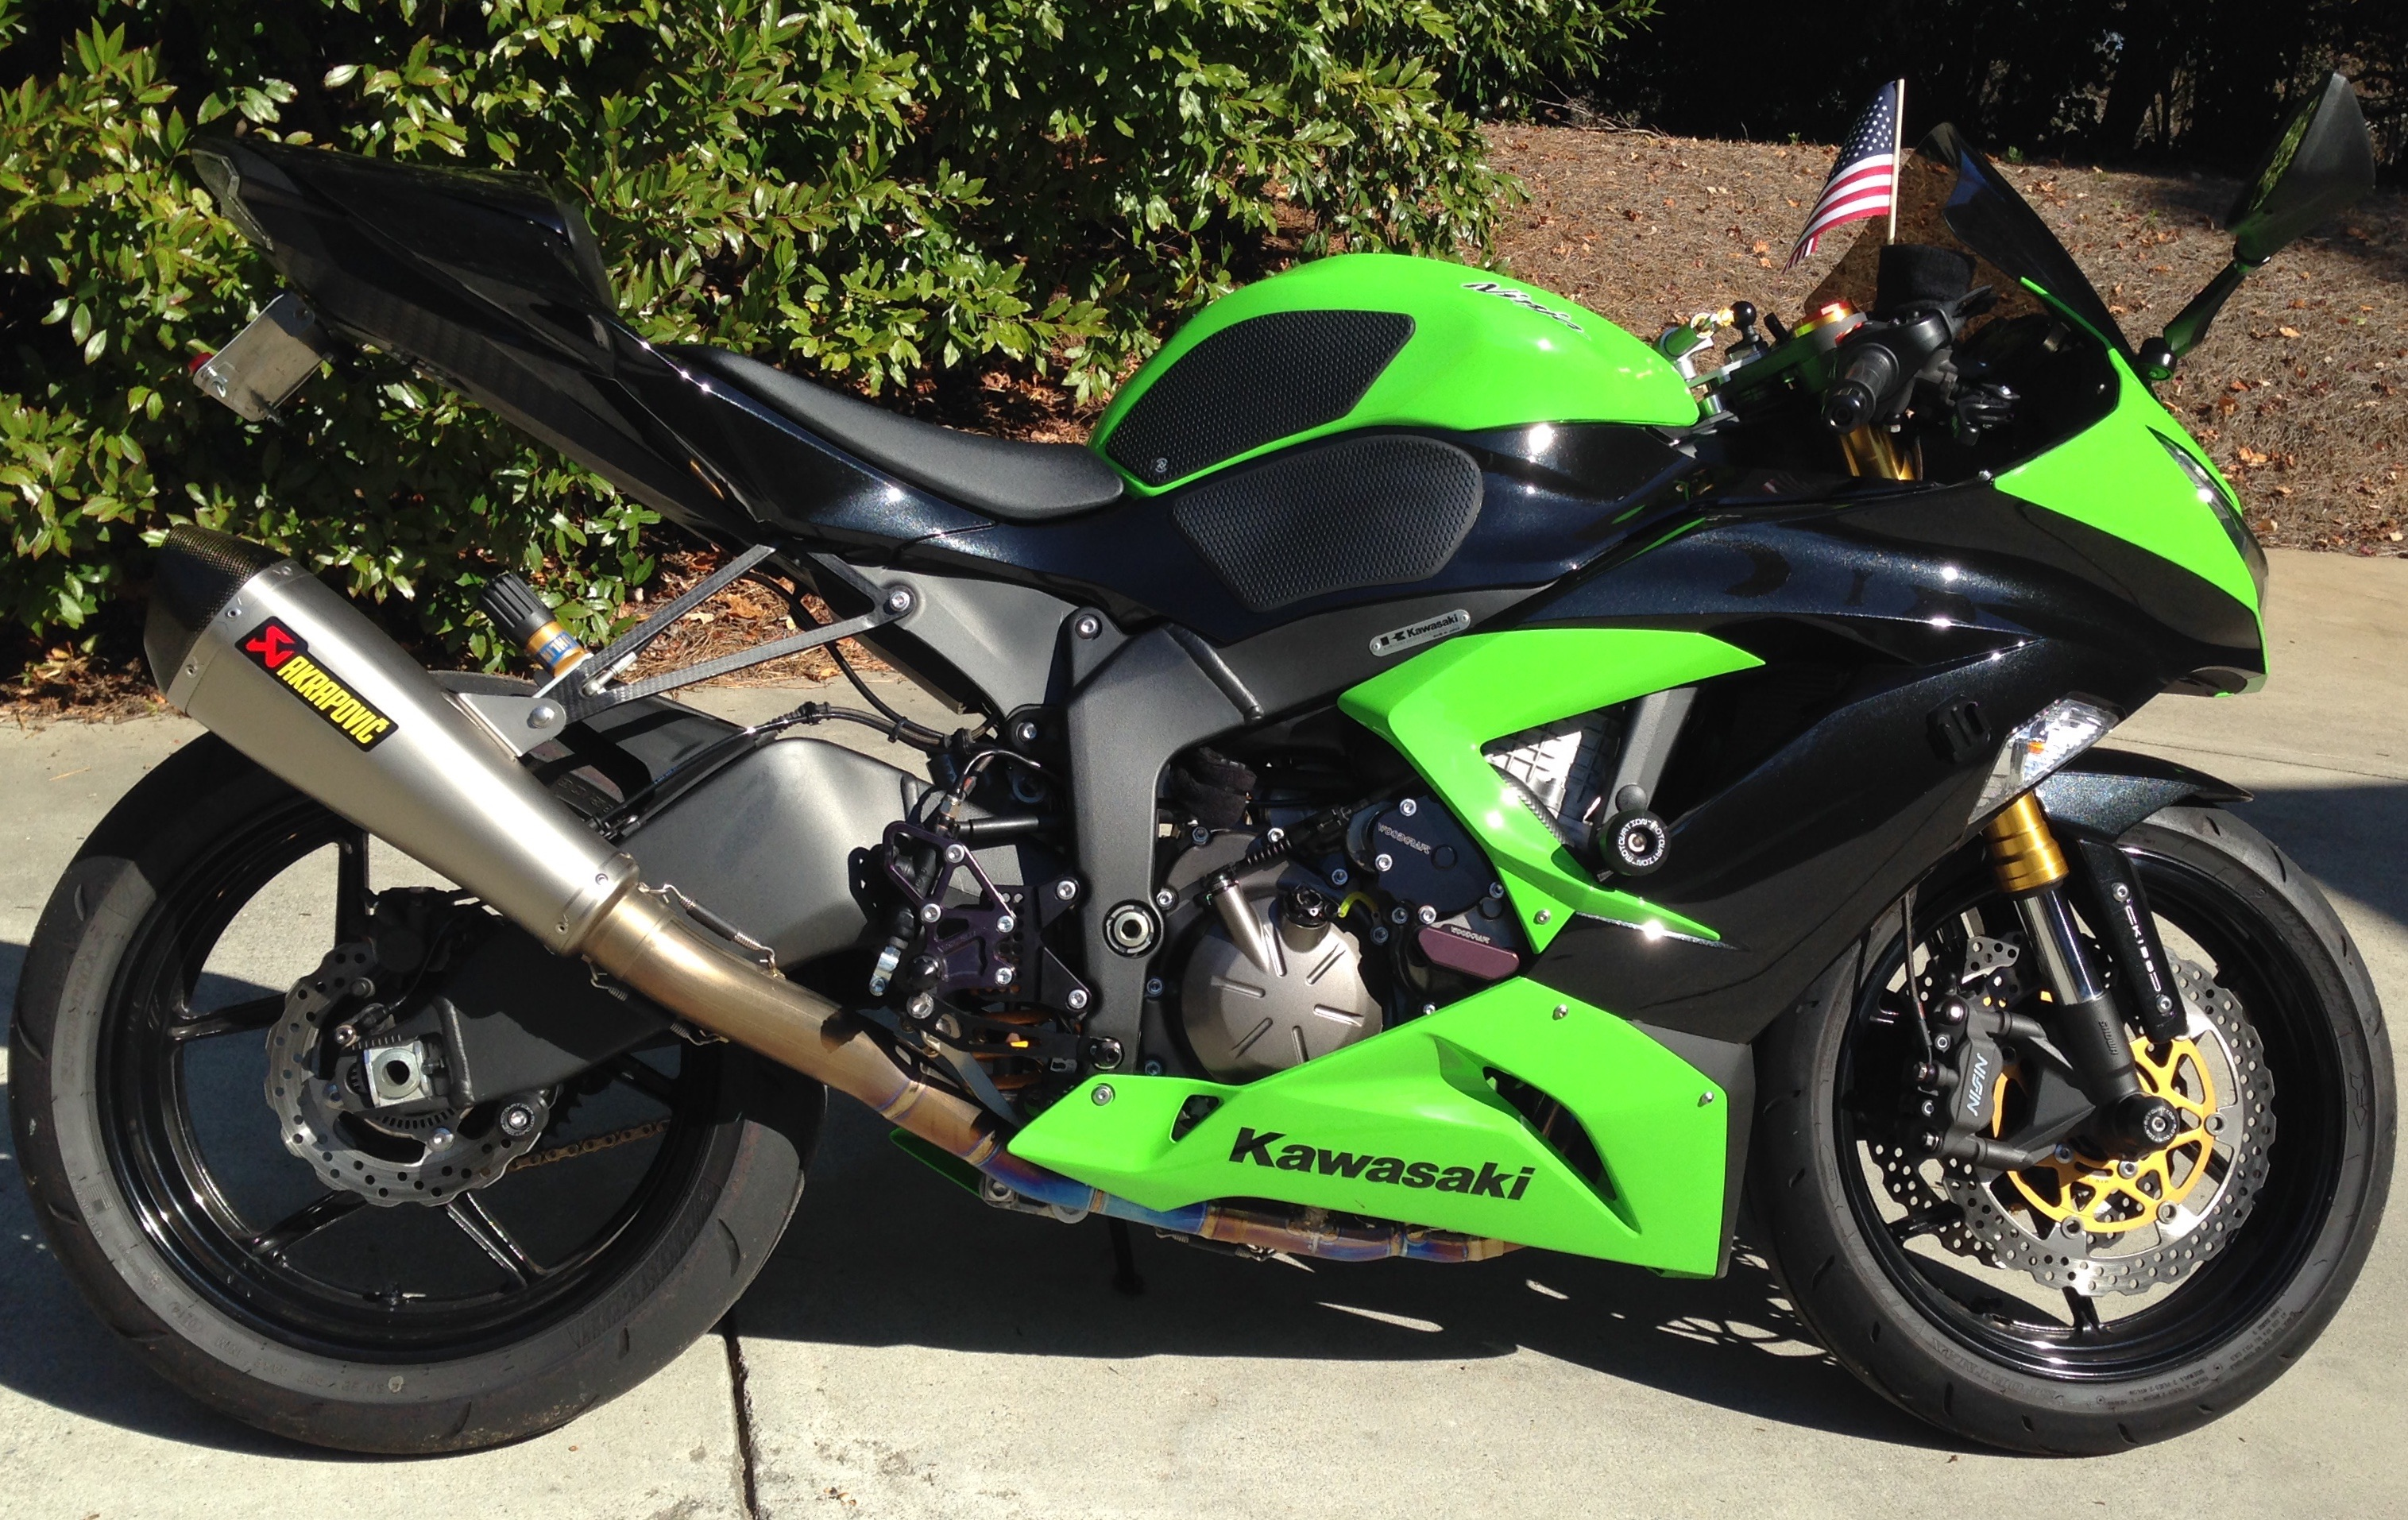 Images of Zx6r Aftermarket Exhaust